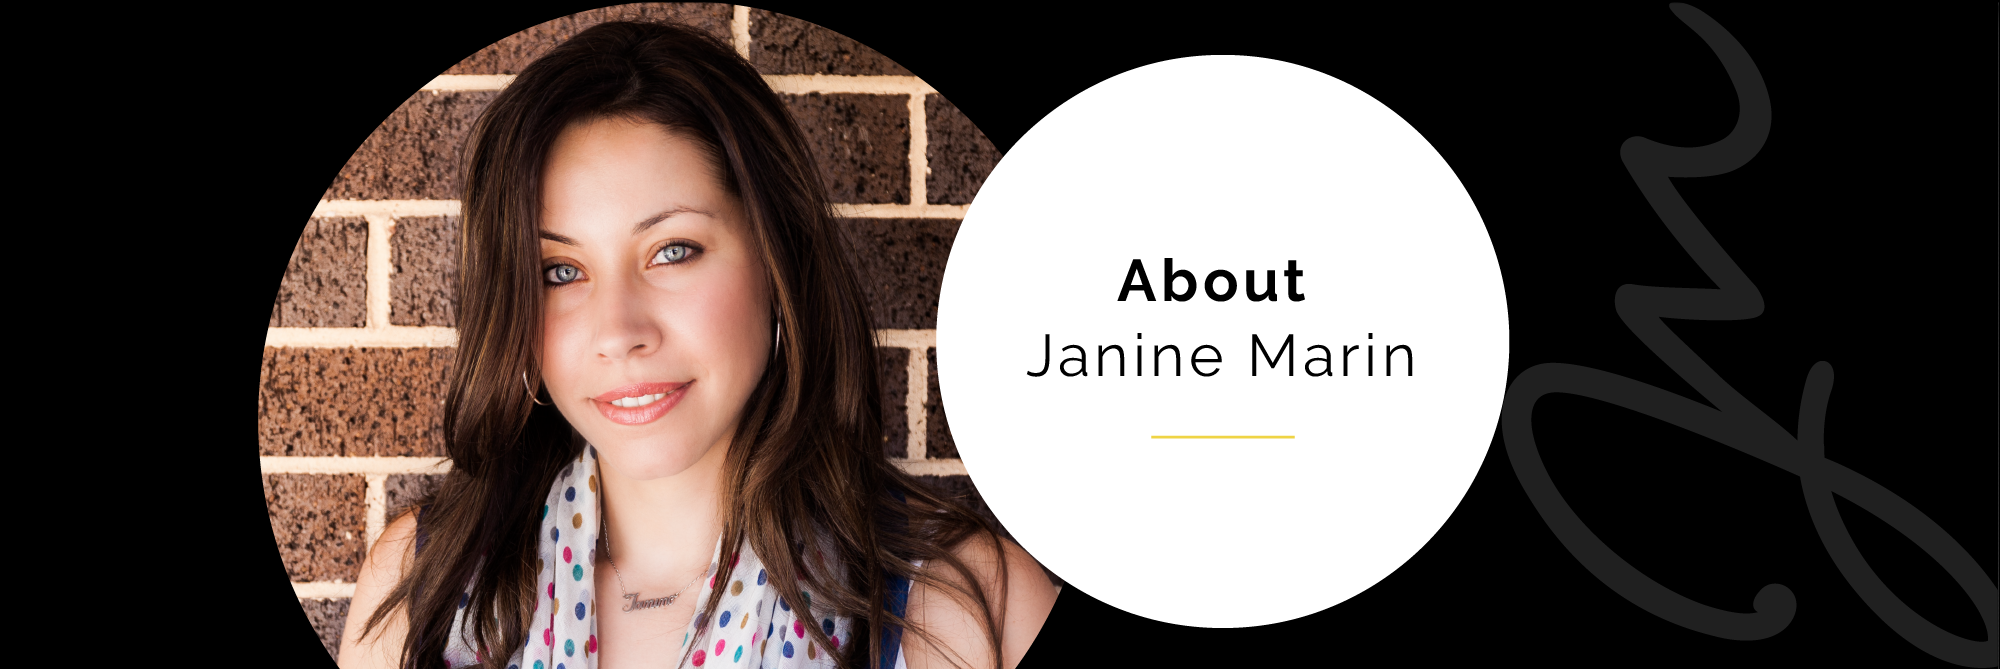 janine-marin-communications-expert